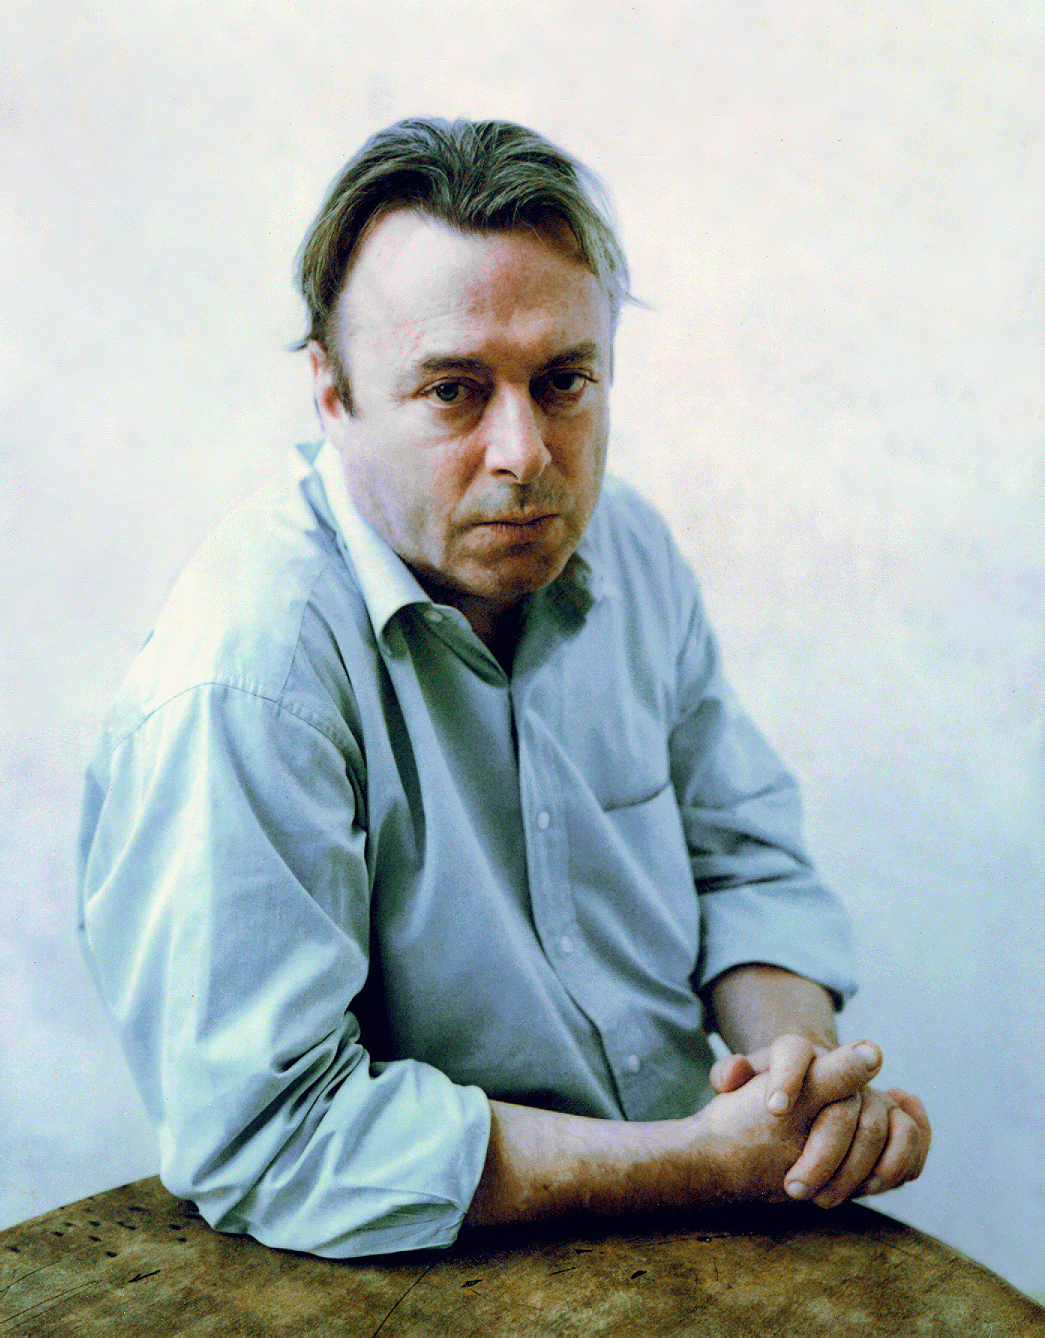 Christopher Hitchens on Free Speech: To whom are you going to award the job of being the censor?